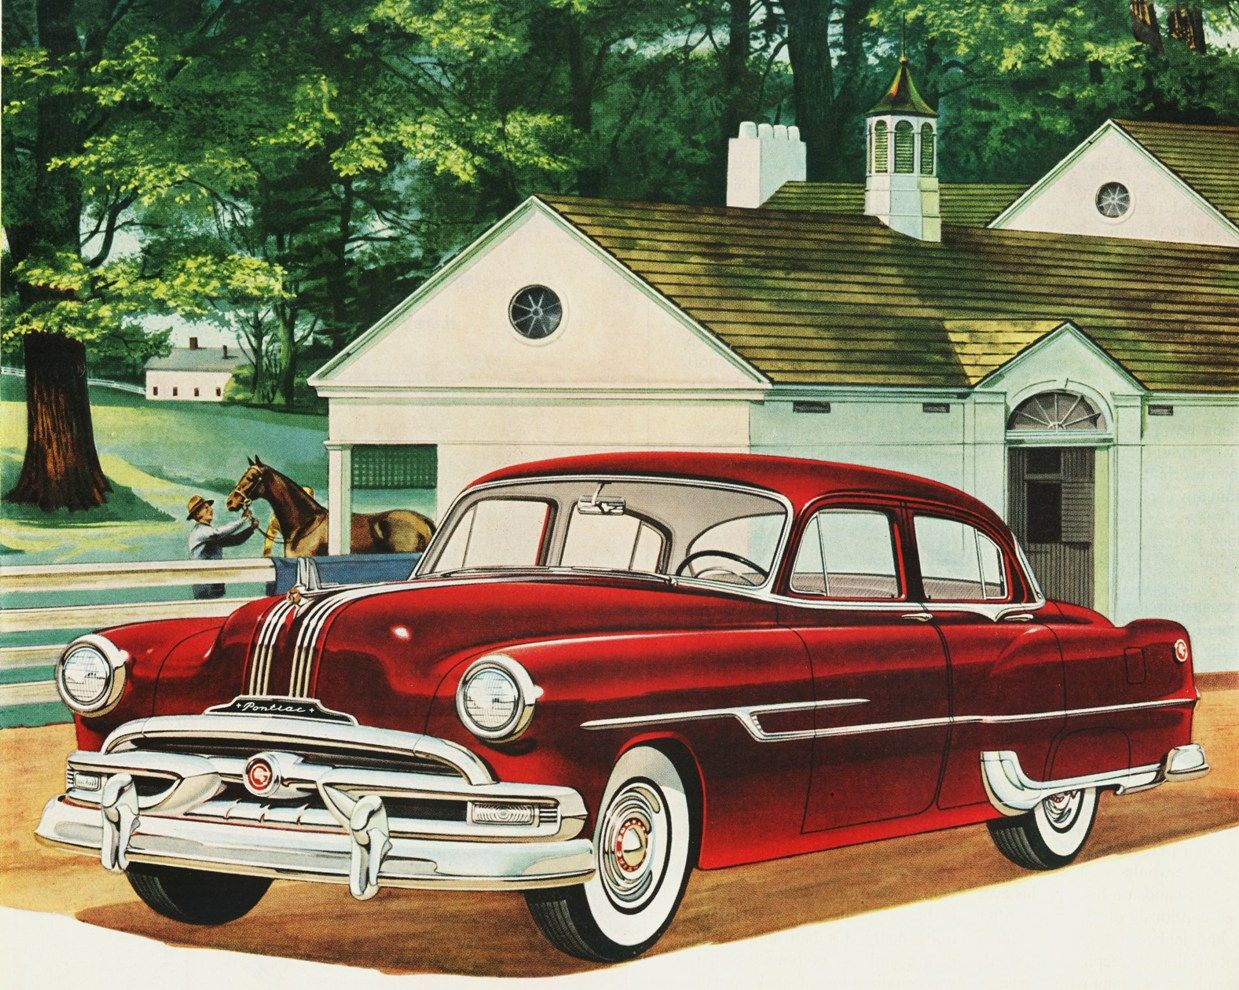 1953 Pontiac Chieftain DeLuxe 4-Door Sedan